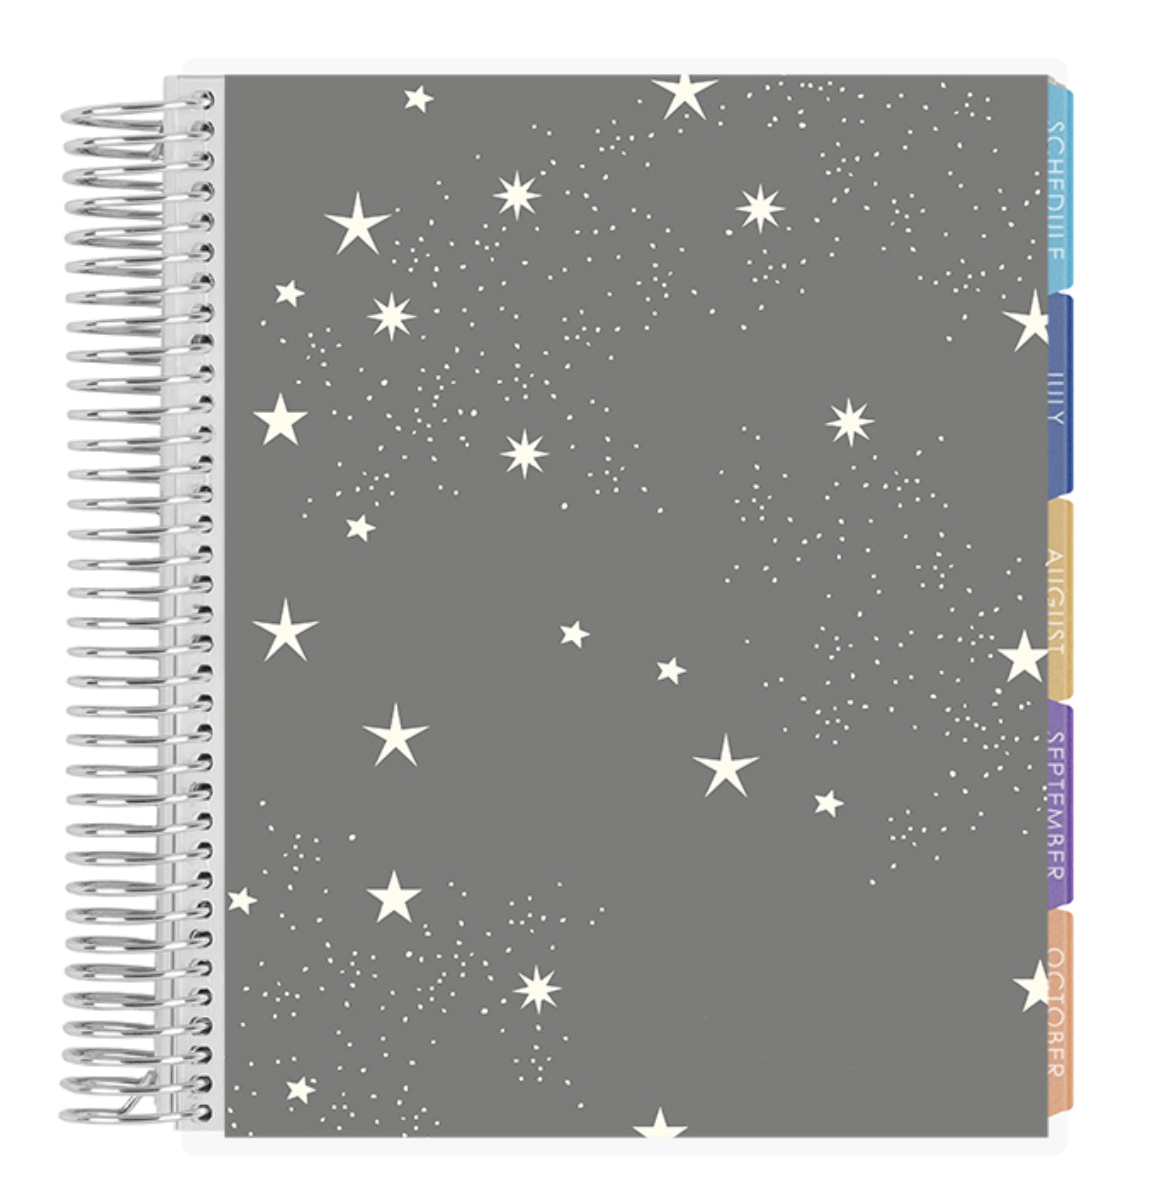 Image For Erin Condren: Starry Sky Academic Planner